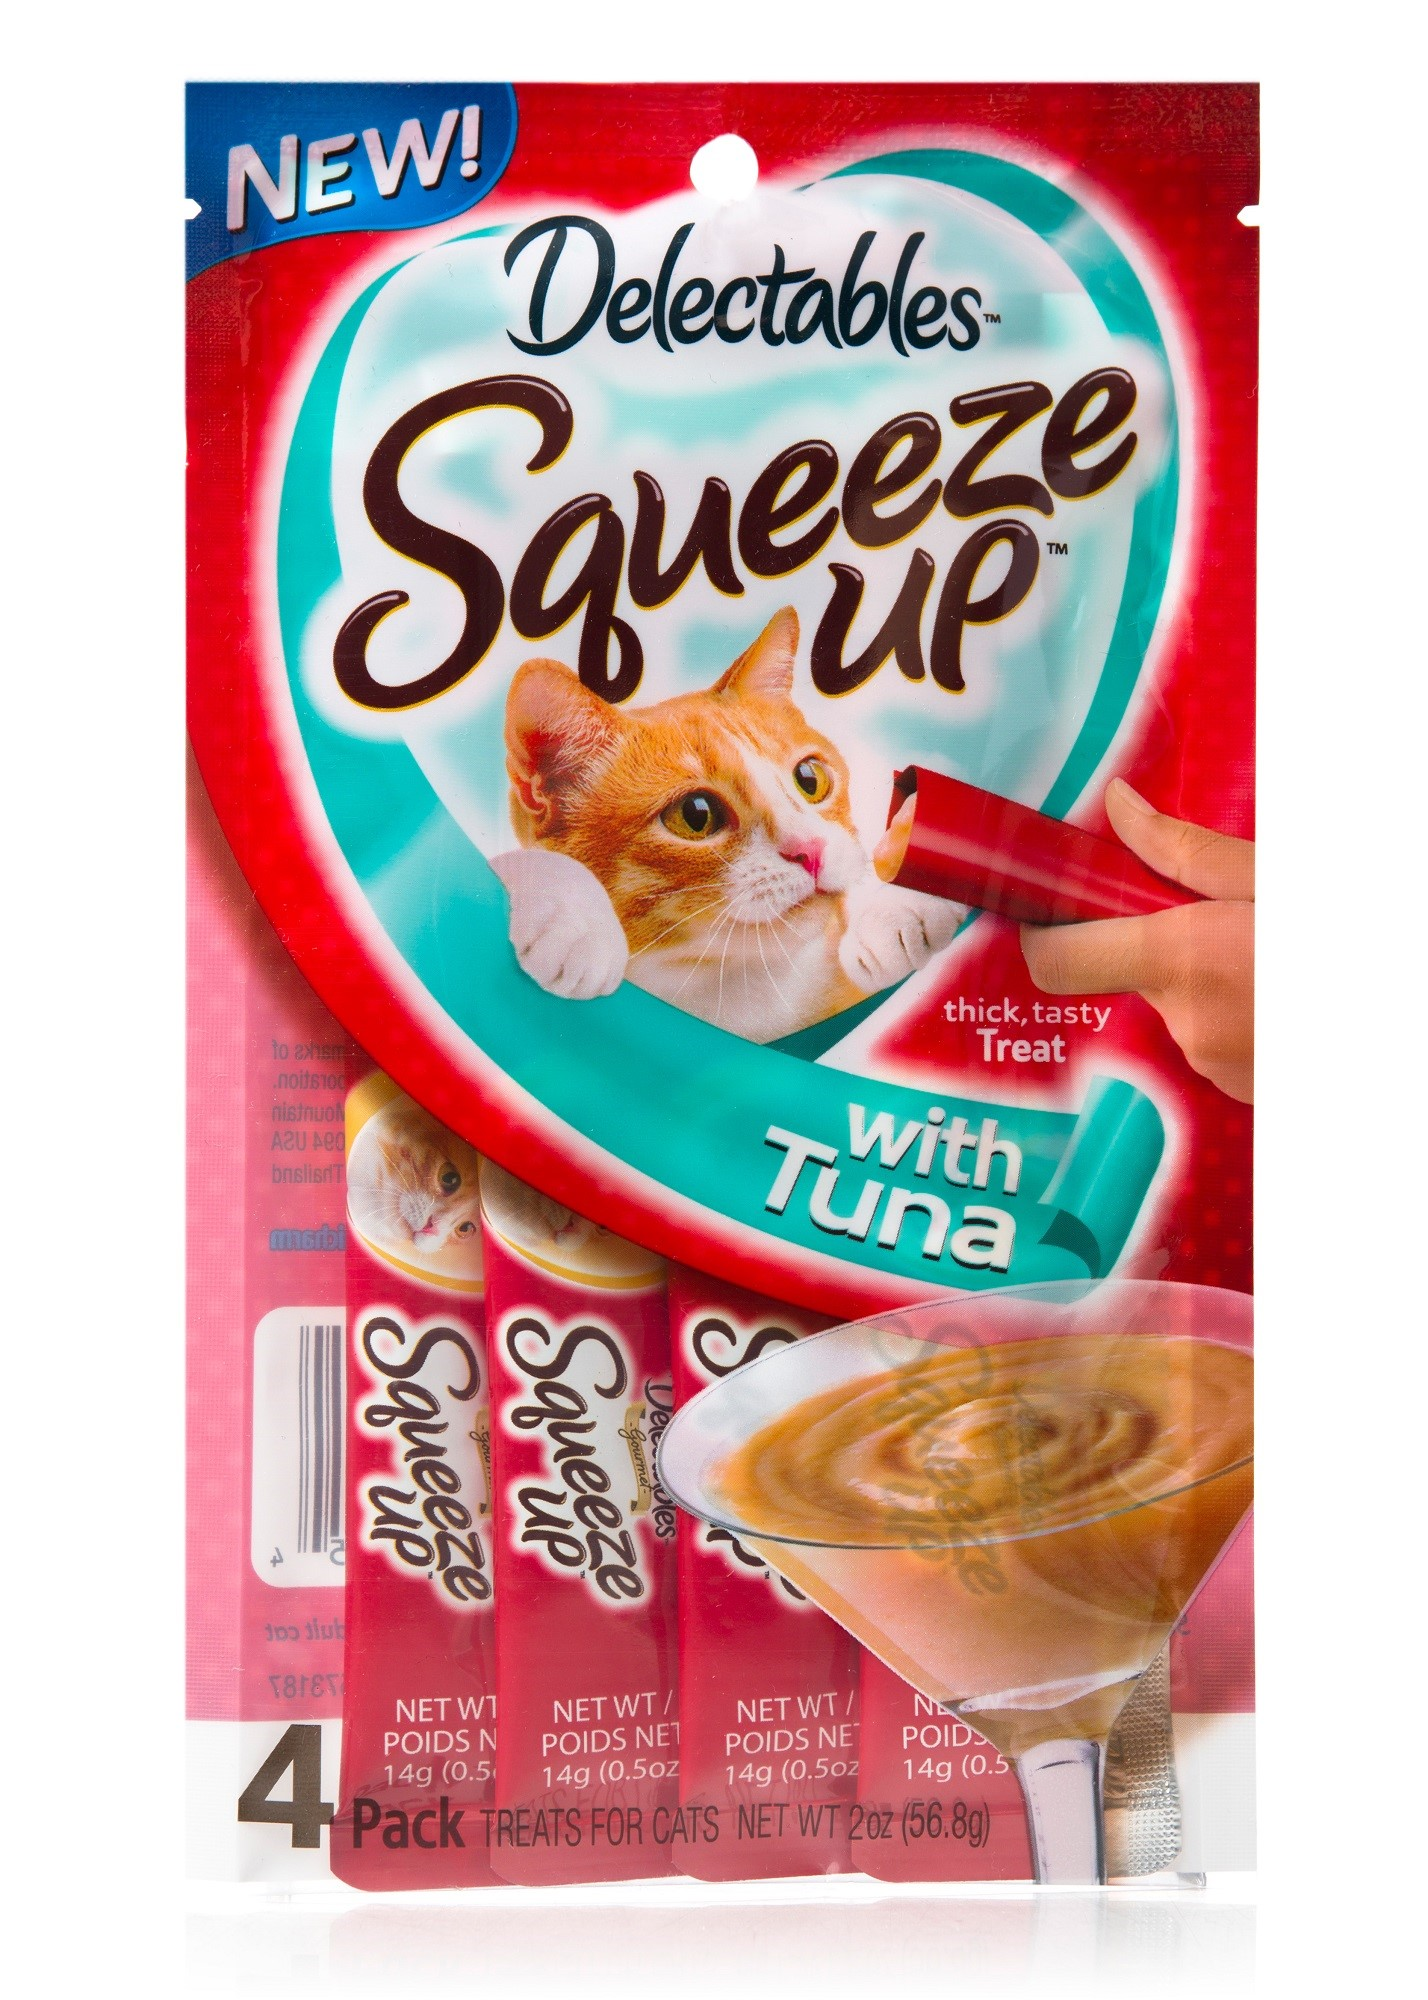 Delectables Squeeze Up Cat Treats Tuna, 4 Count by The Hartz Mountain Corporation